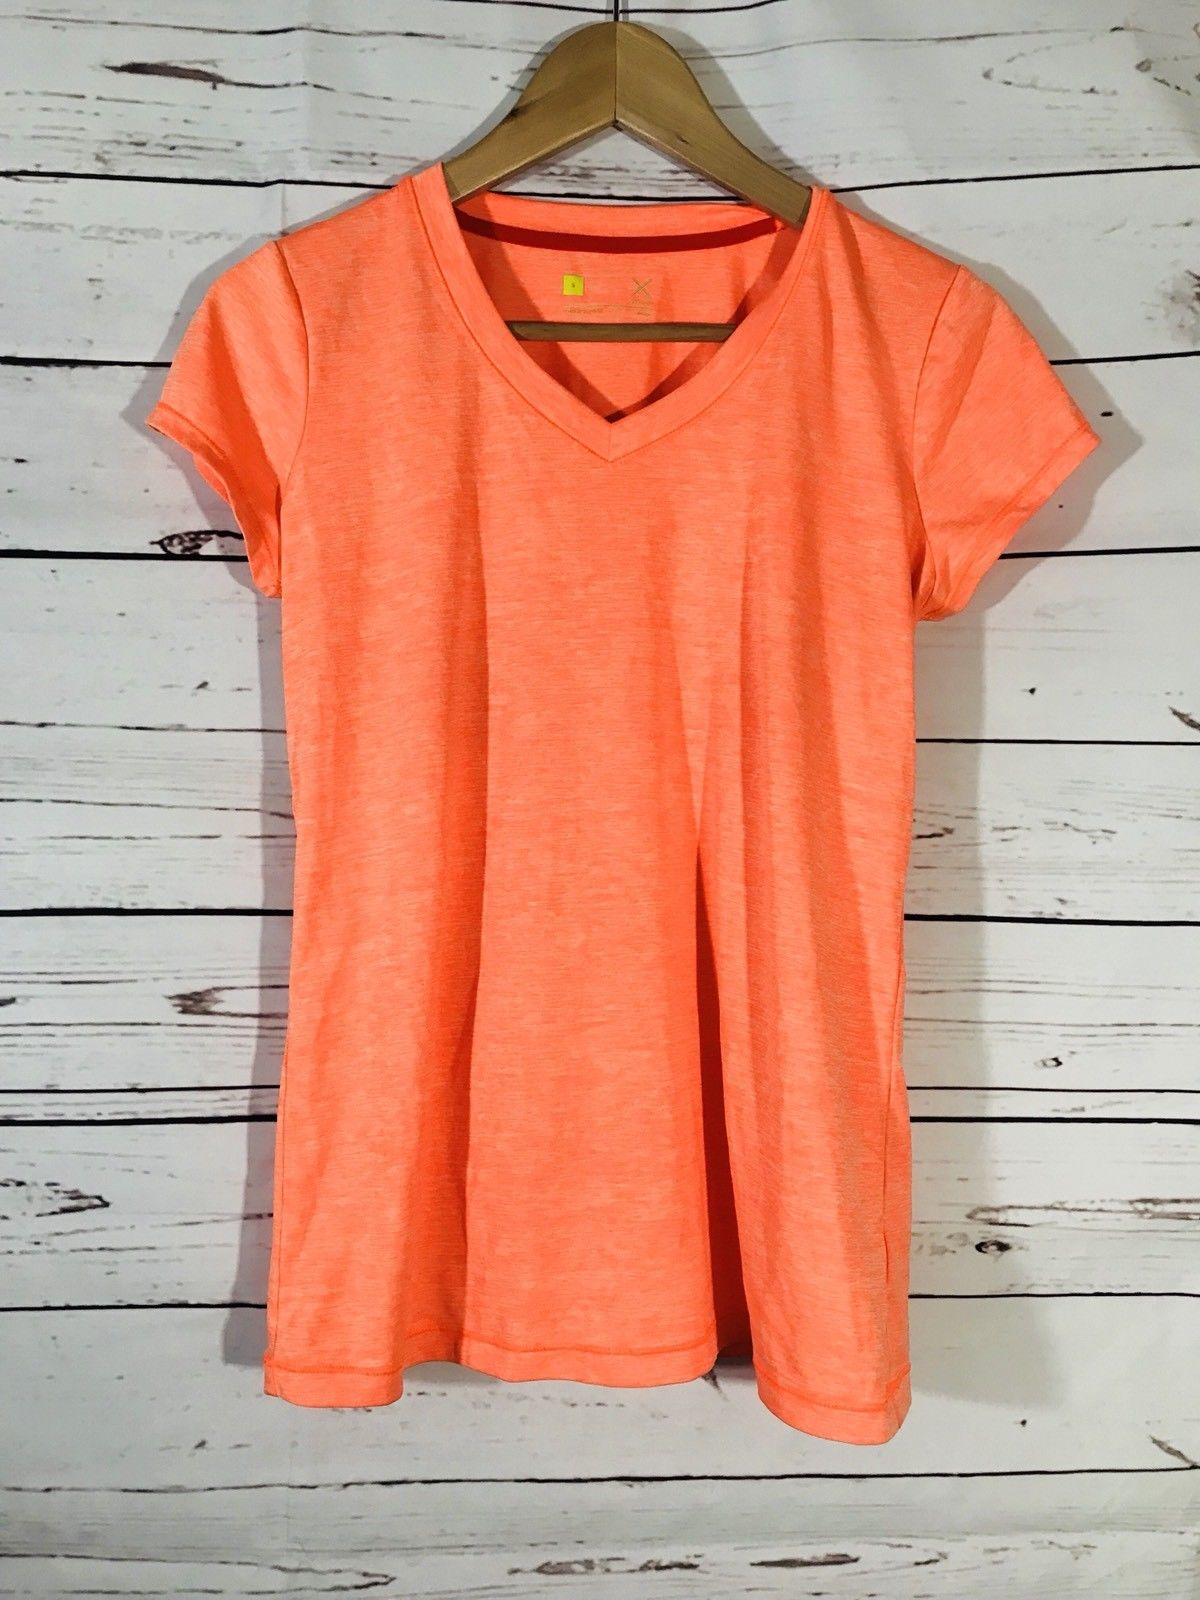 9a3adb9f8706e  Women – Xersion Womens Work Out Shirt Size S Orange Top Stretch JCPenney